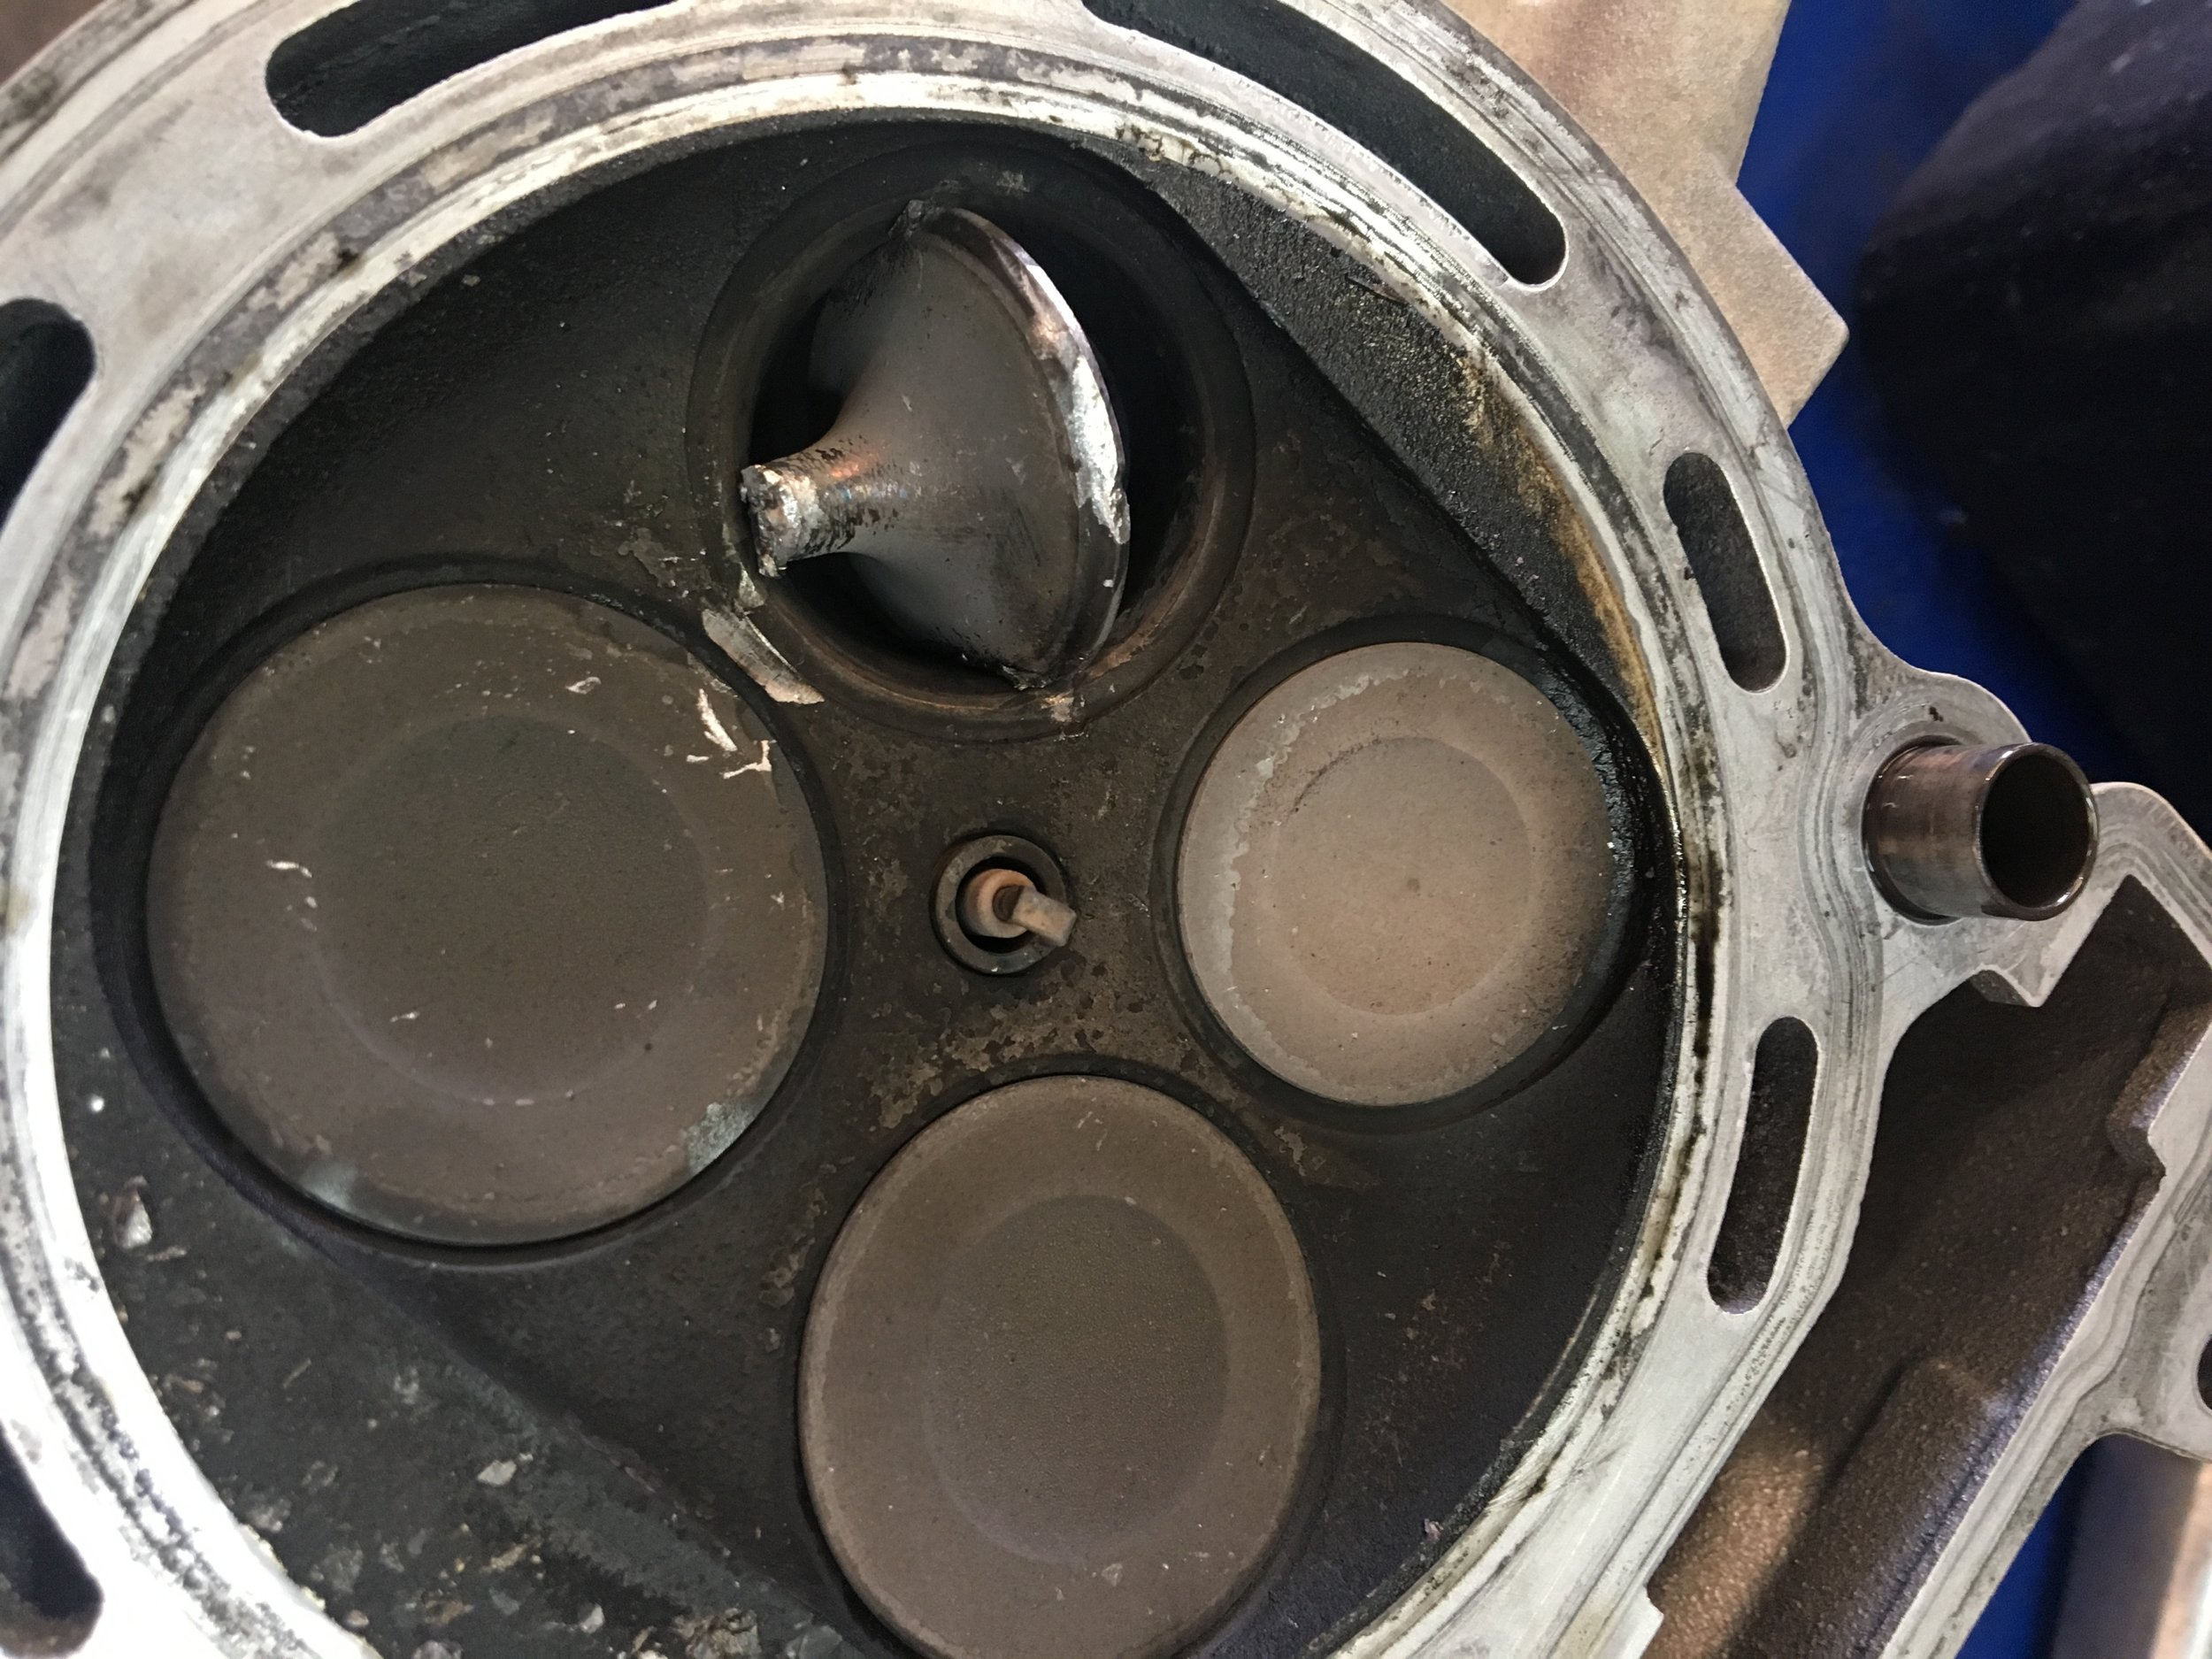 We believe what happened is that the bike was run without coolant and that exhaust valve got really hot and seized in the guide causing the piston to hit it, break it and then jam it into the head.  Not a good day!